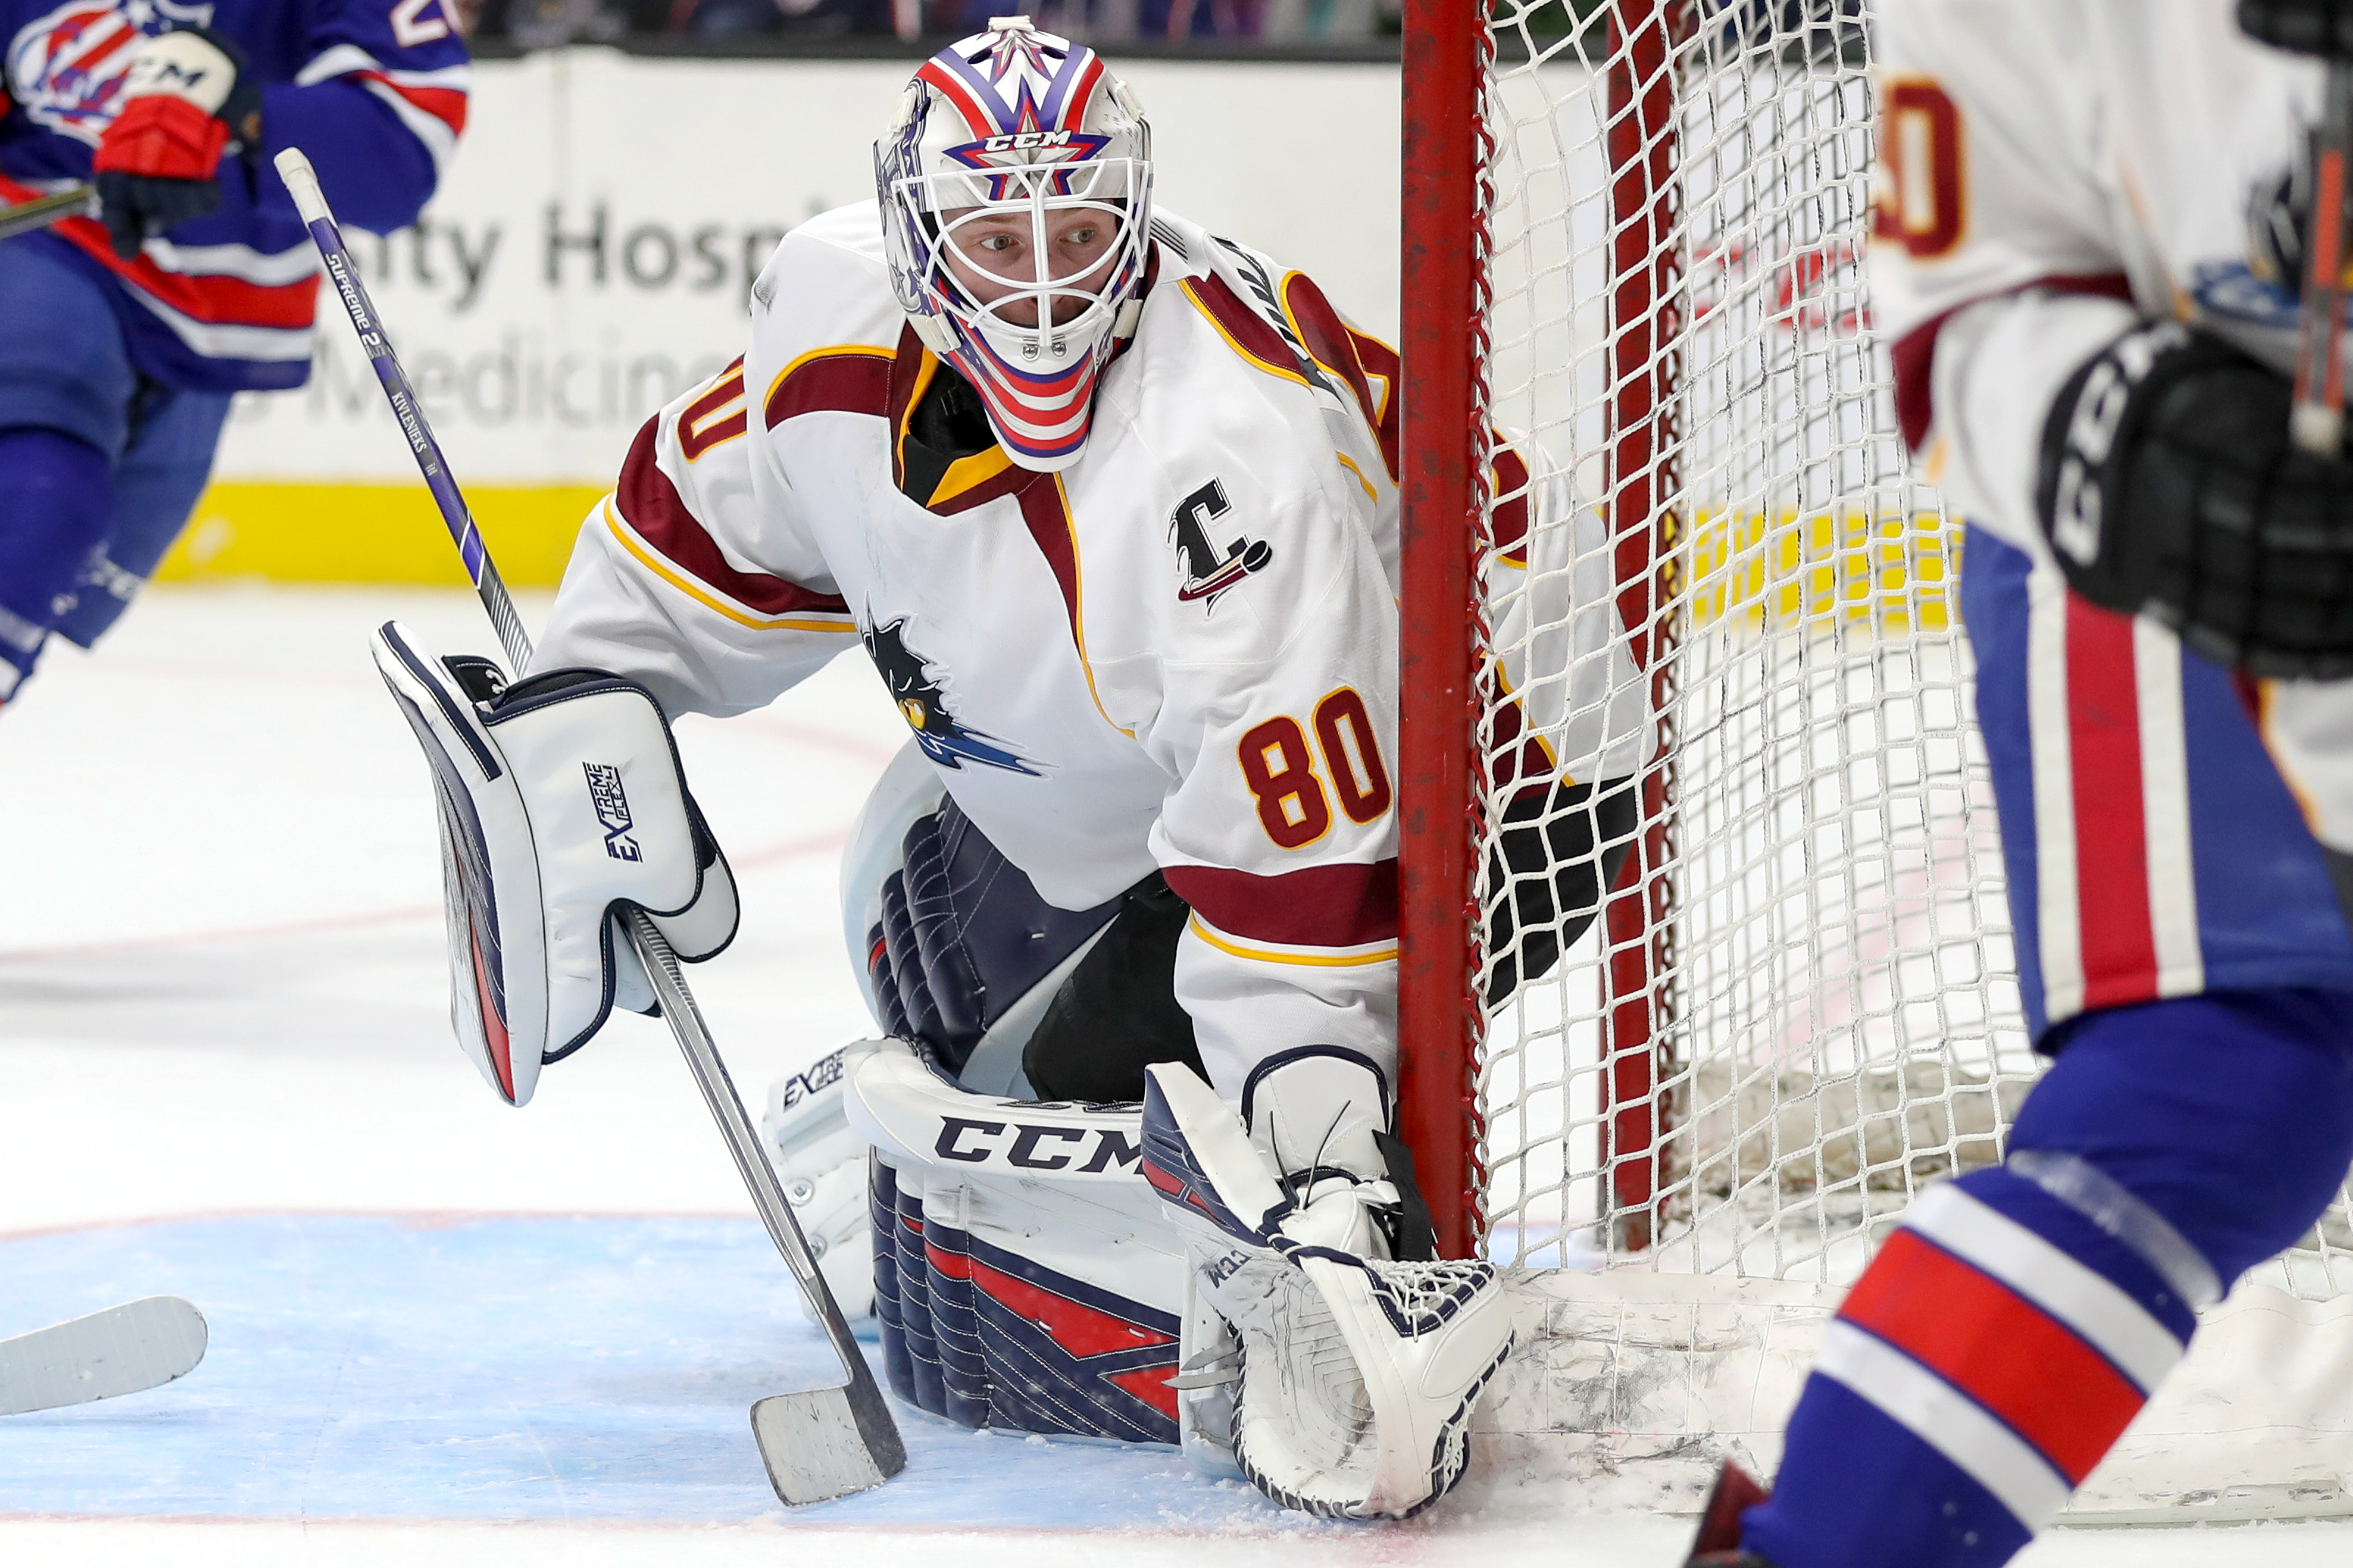 AHL: DEC 15 Rochester Americans at Cleveland Monsters